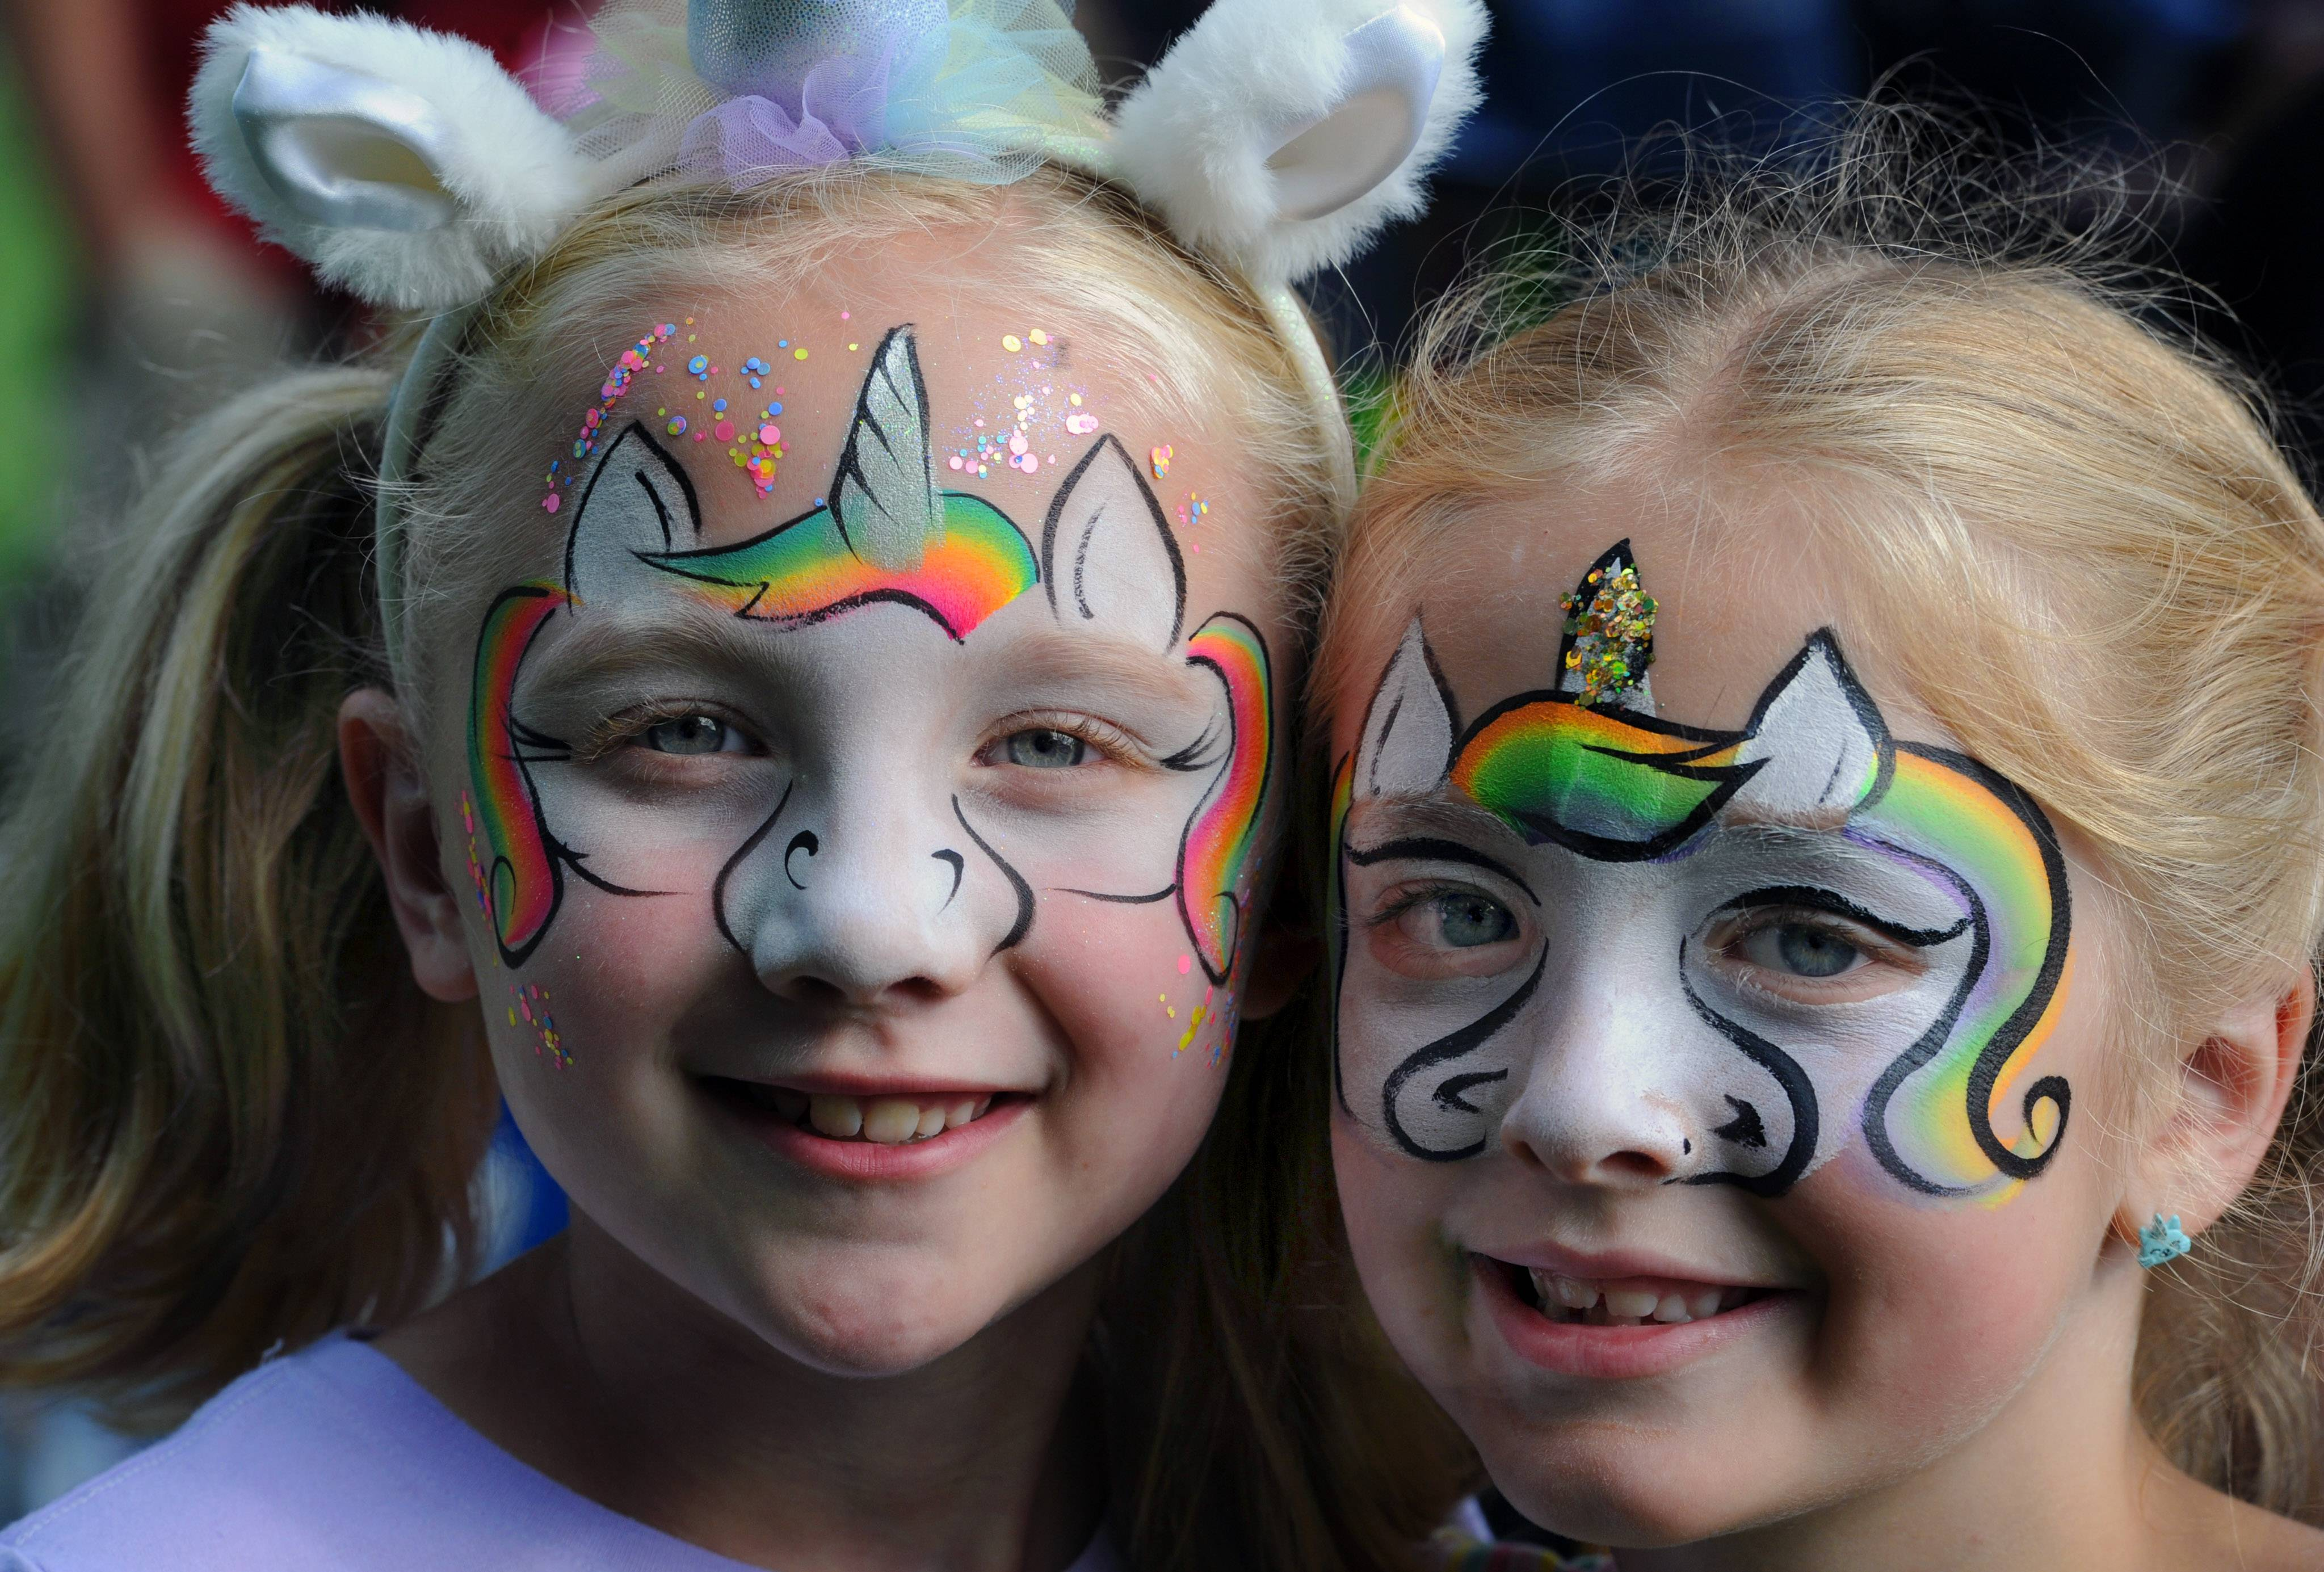 Maddie Affatati, 7, and her friend Sophia Marino, 7, both of Arlington Heights, got their faces painted to look magical during Picnic in the Park Friday at North School Park in Arlington Heights.